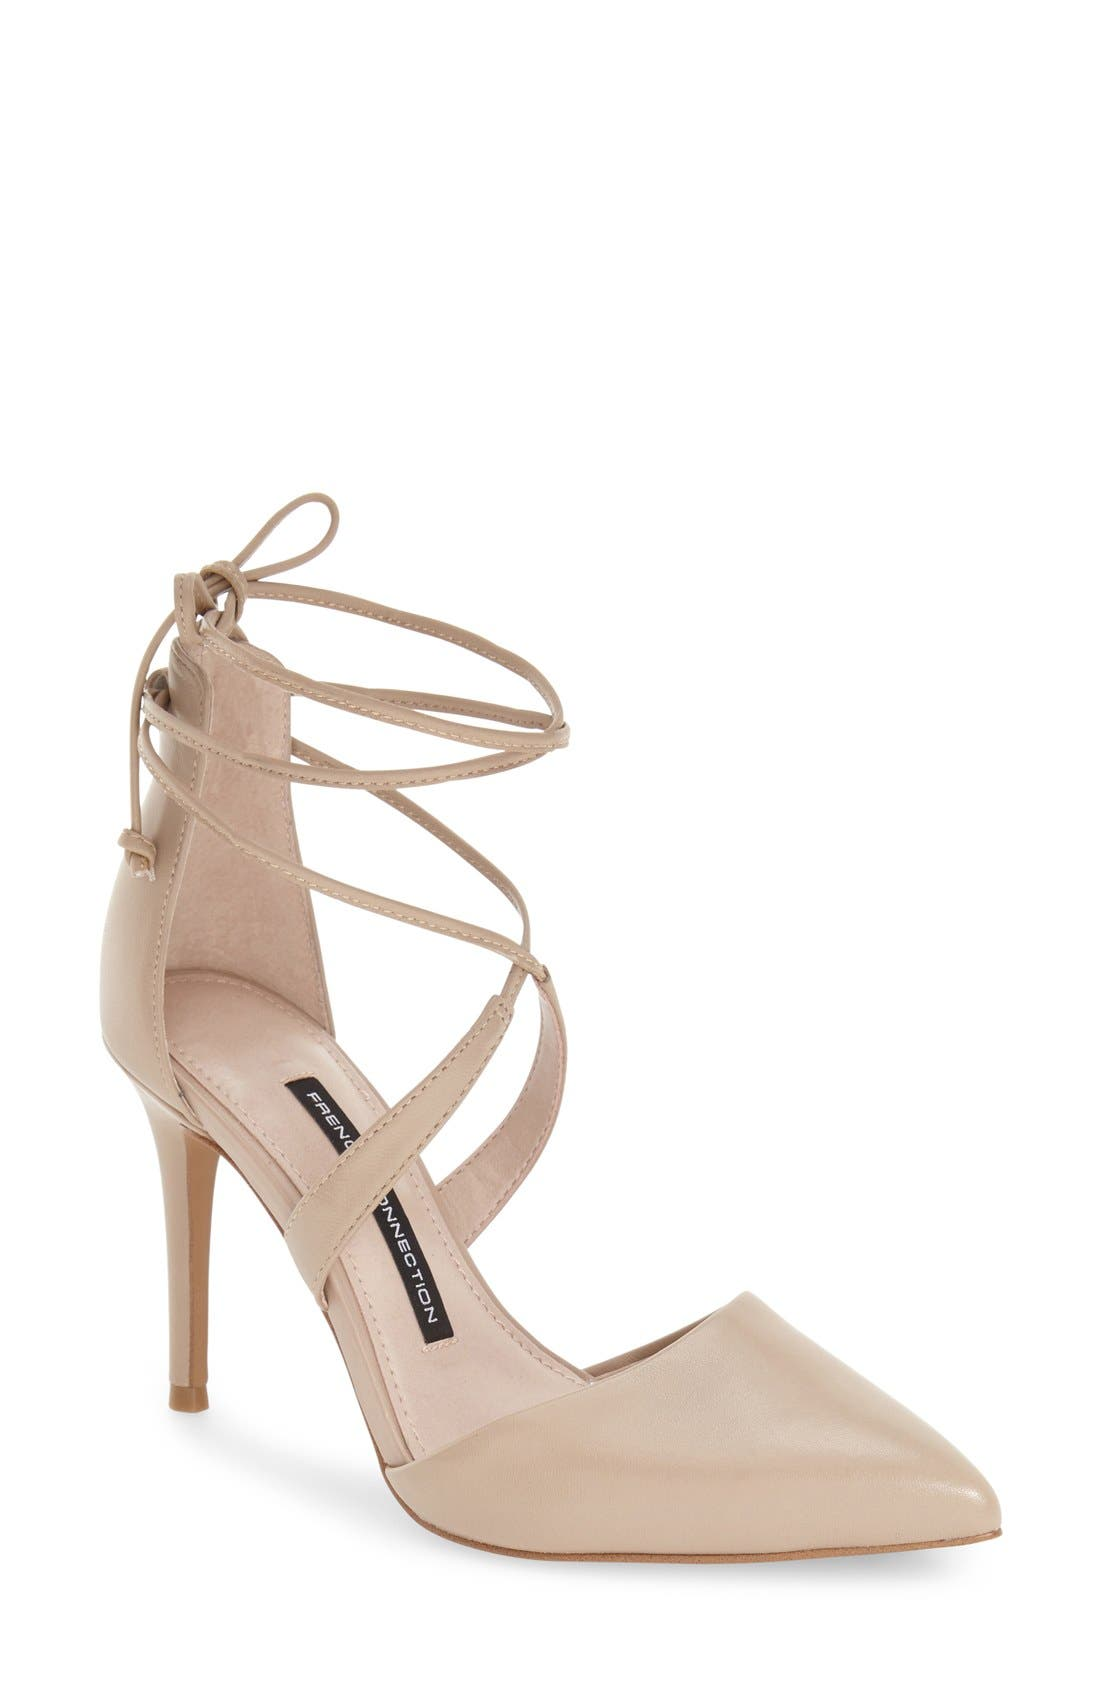 'Elise' d'Orsay Wraparound Lace Pump,                             Main thumbnail 1, color,                             Almost Nude Leather